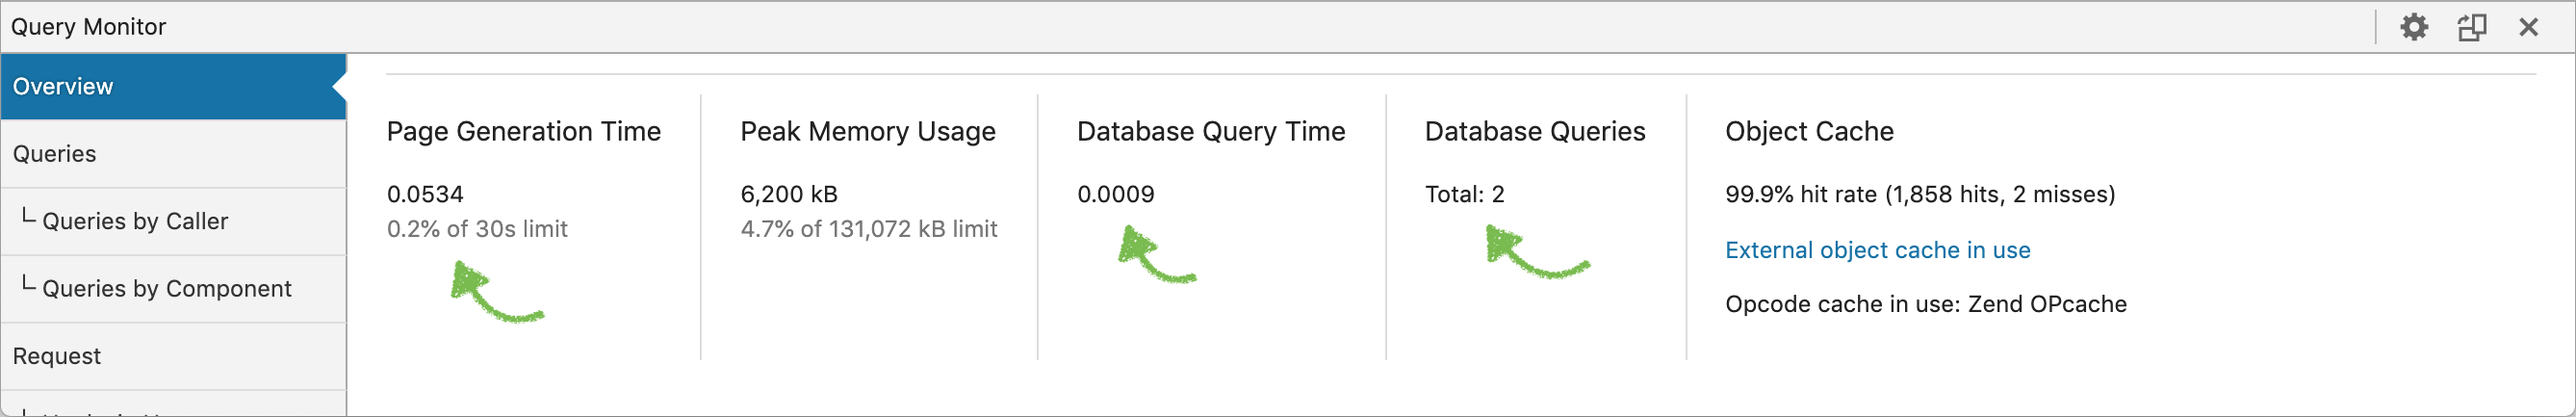 Object cache enabled